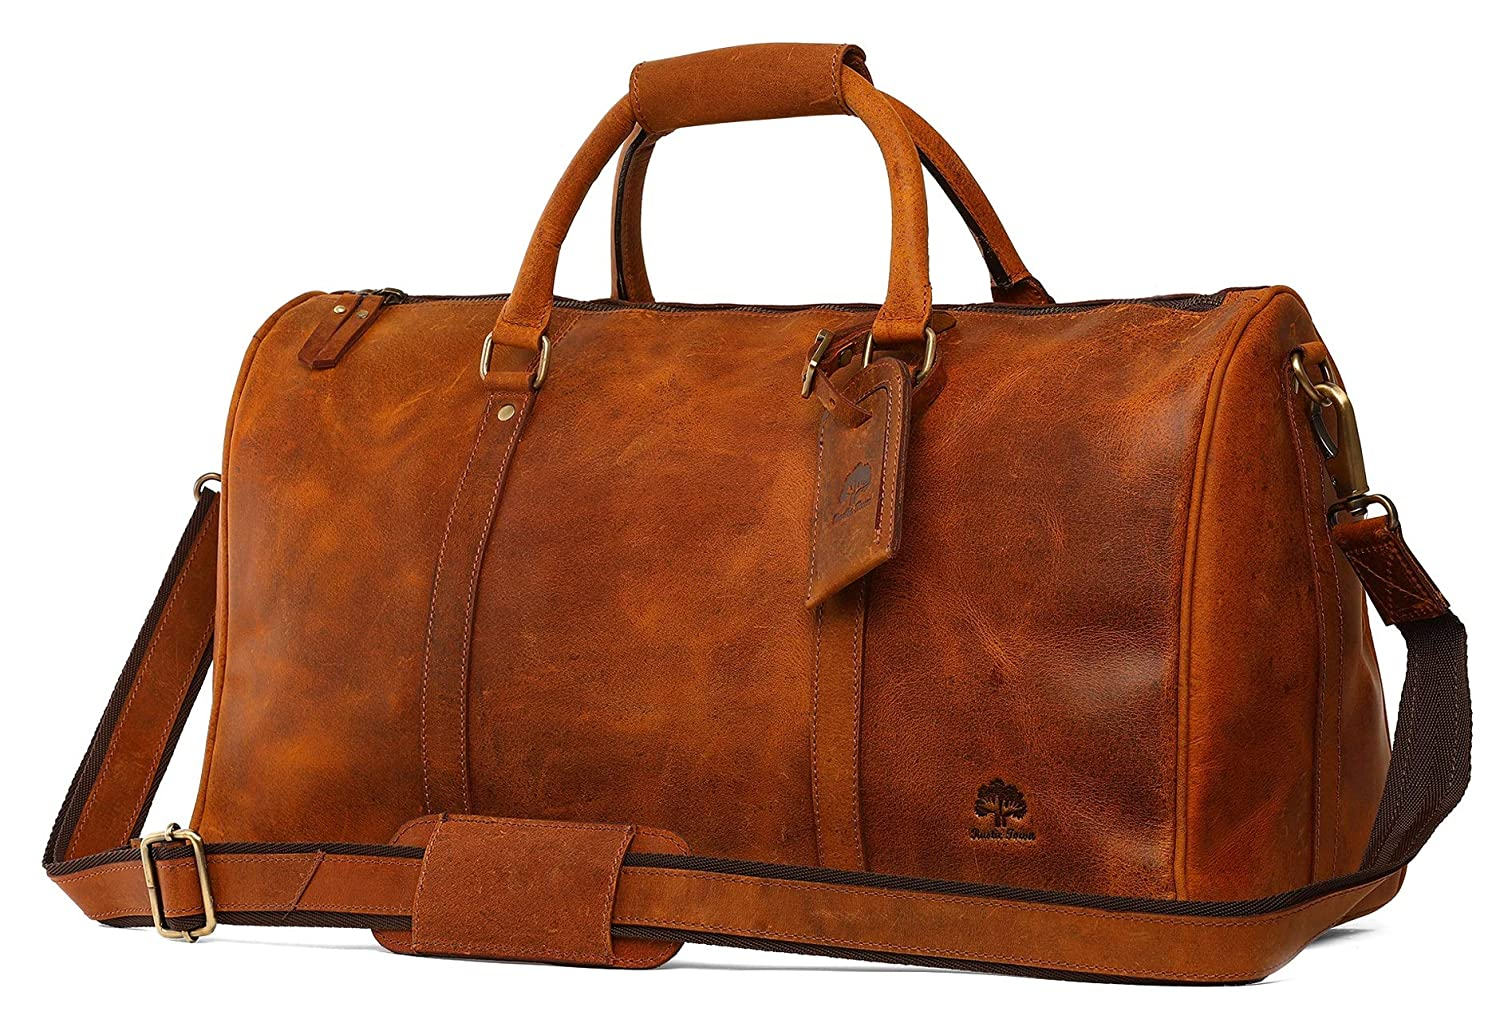 Leather Duffel Bags For Men - Airplane Underseat Carry On Luggage By RusticTown RusticTown Inc DF17ADN